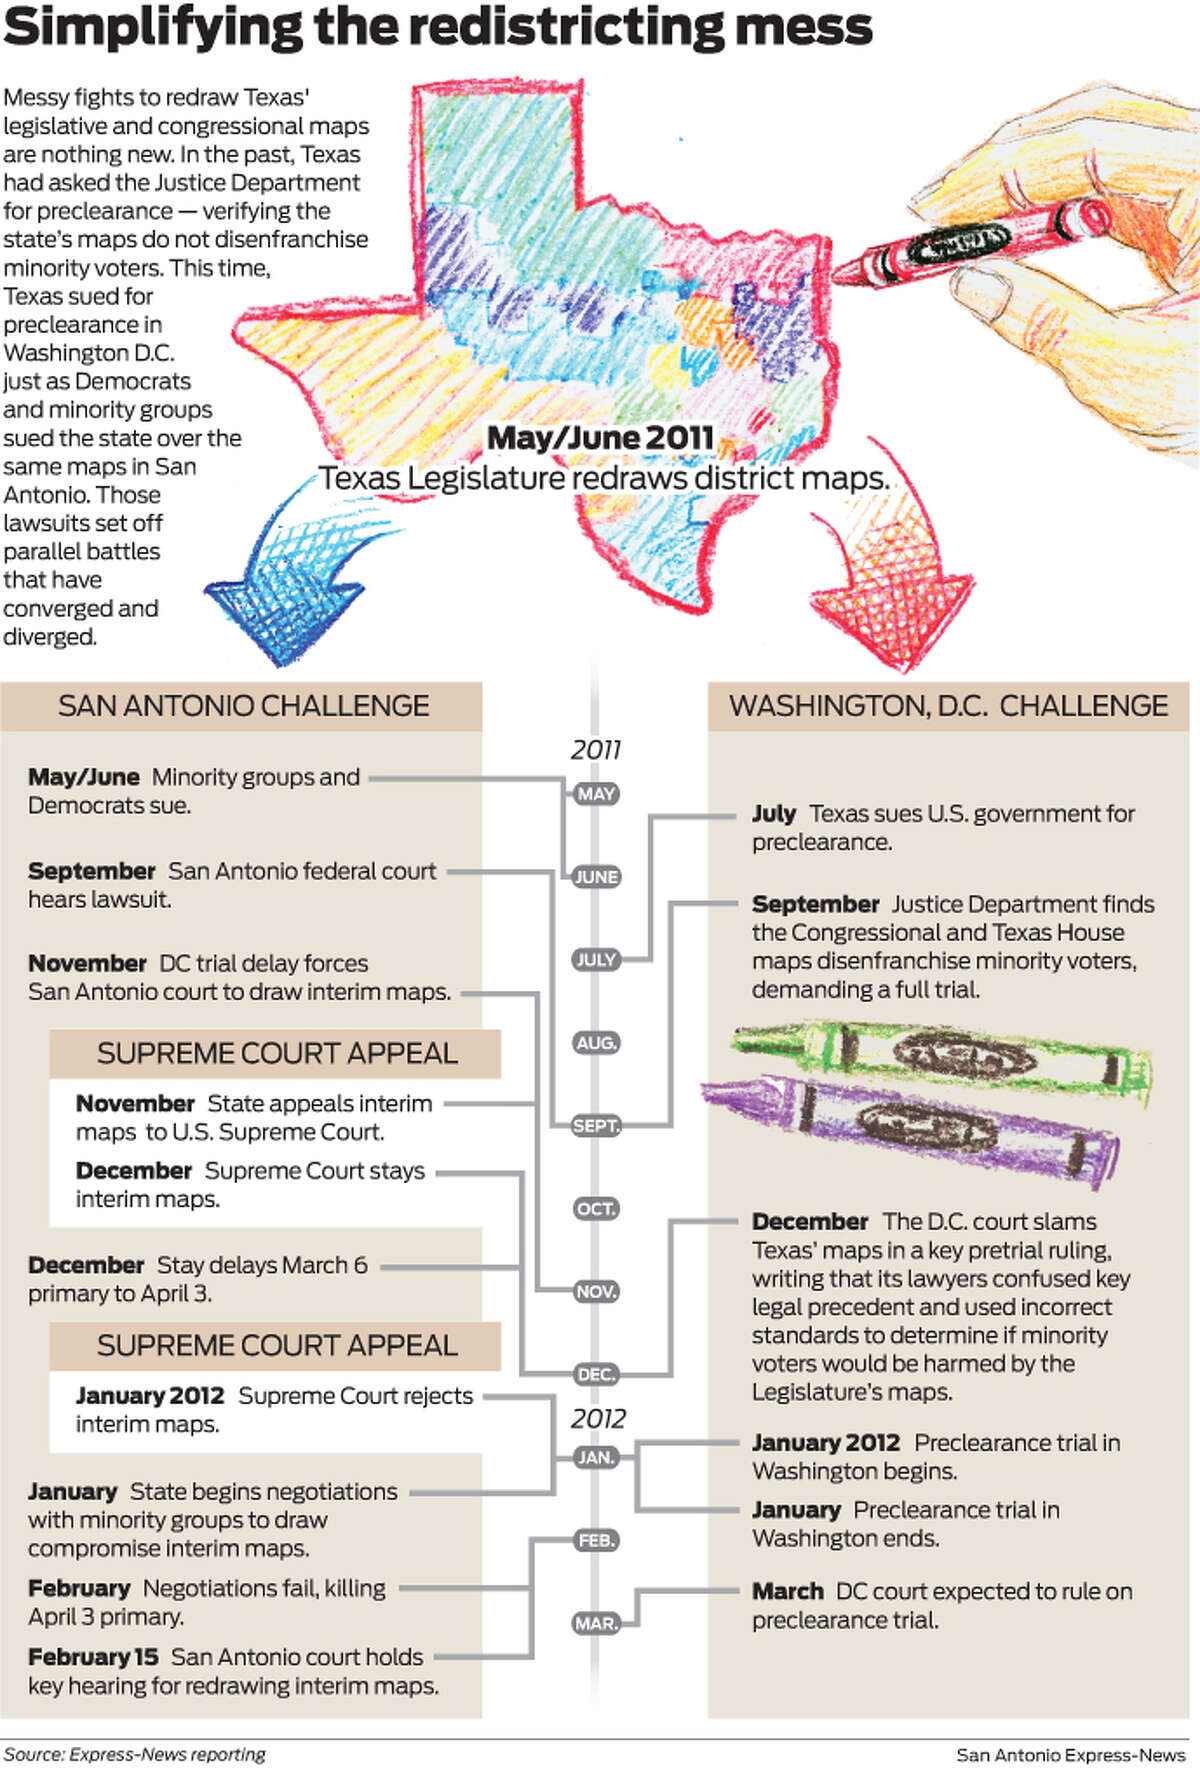 Simplifiying the redistricting mess Messy fights to redraw Texas' legislative and congressional maps are nothing new. In the past, Texas had asked the Justice Department for preclearance - verifying the state's maps do not disenfranchise minority voters. This time, Texas sued for preclearance in Washington D.C. just as Democrats and minority groups sued the state over the same maps in San Antonio. Those lawsuits set off parallel battles that have converged and diverged.